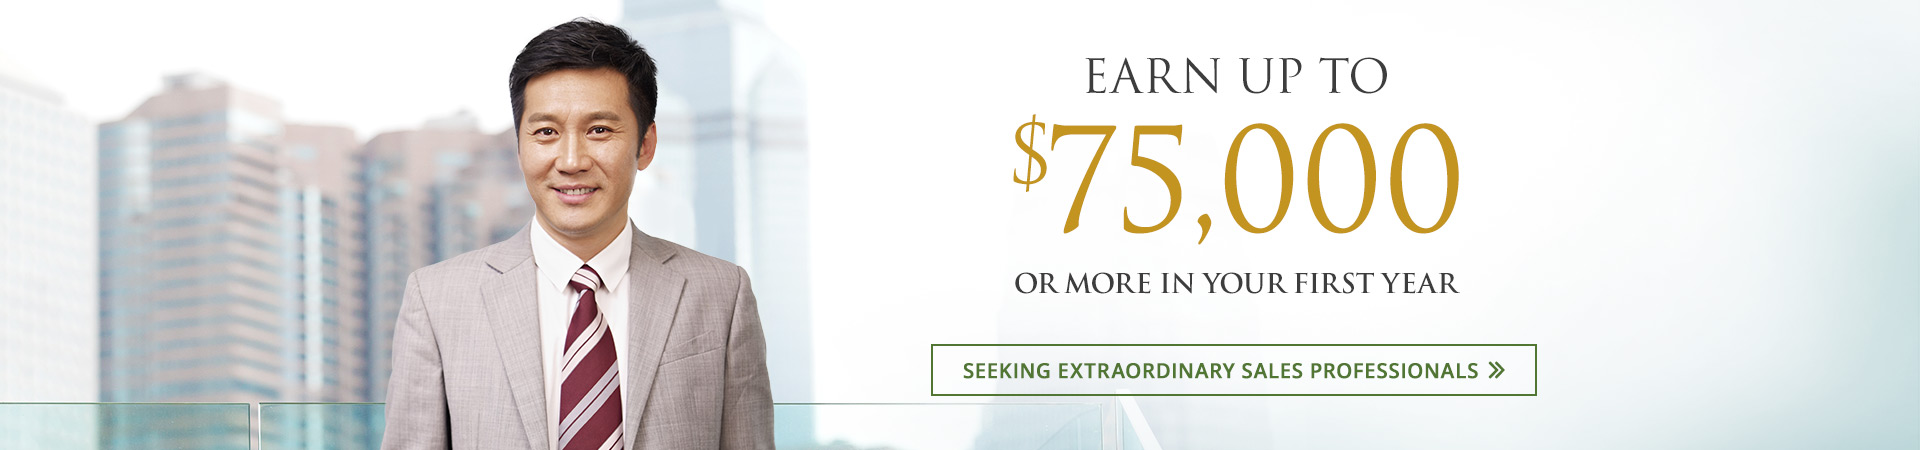 Earn up to $75,000 or more your first year